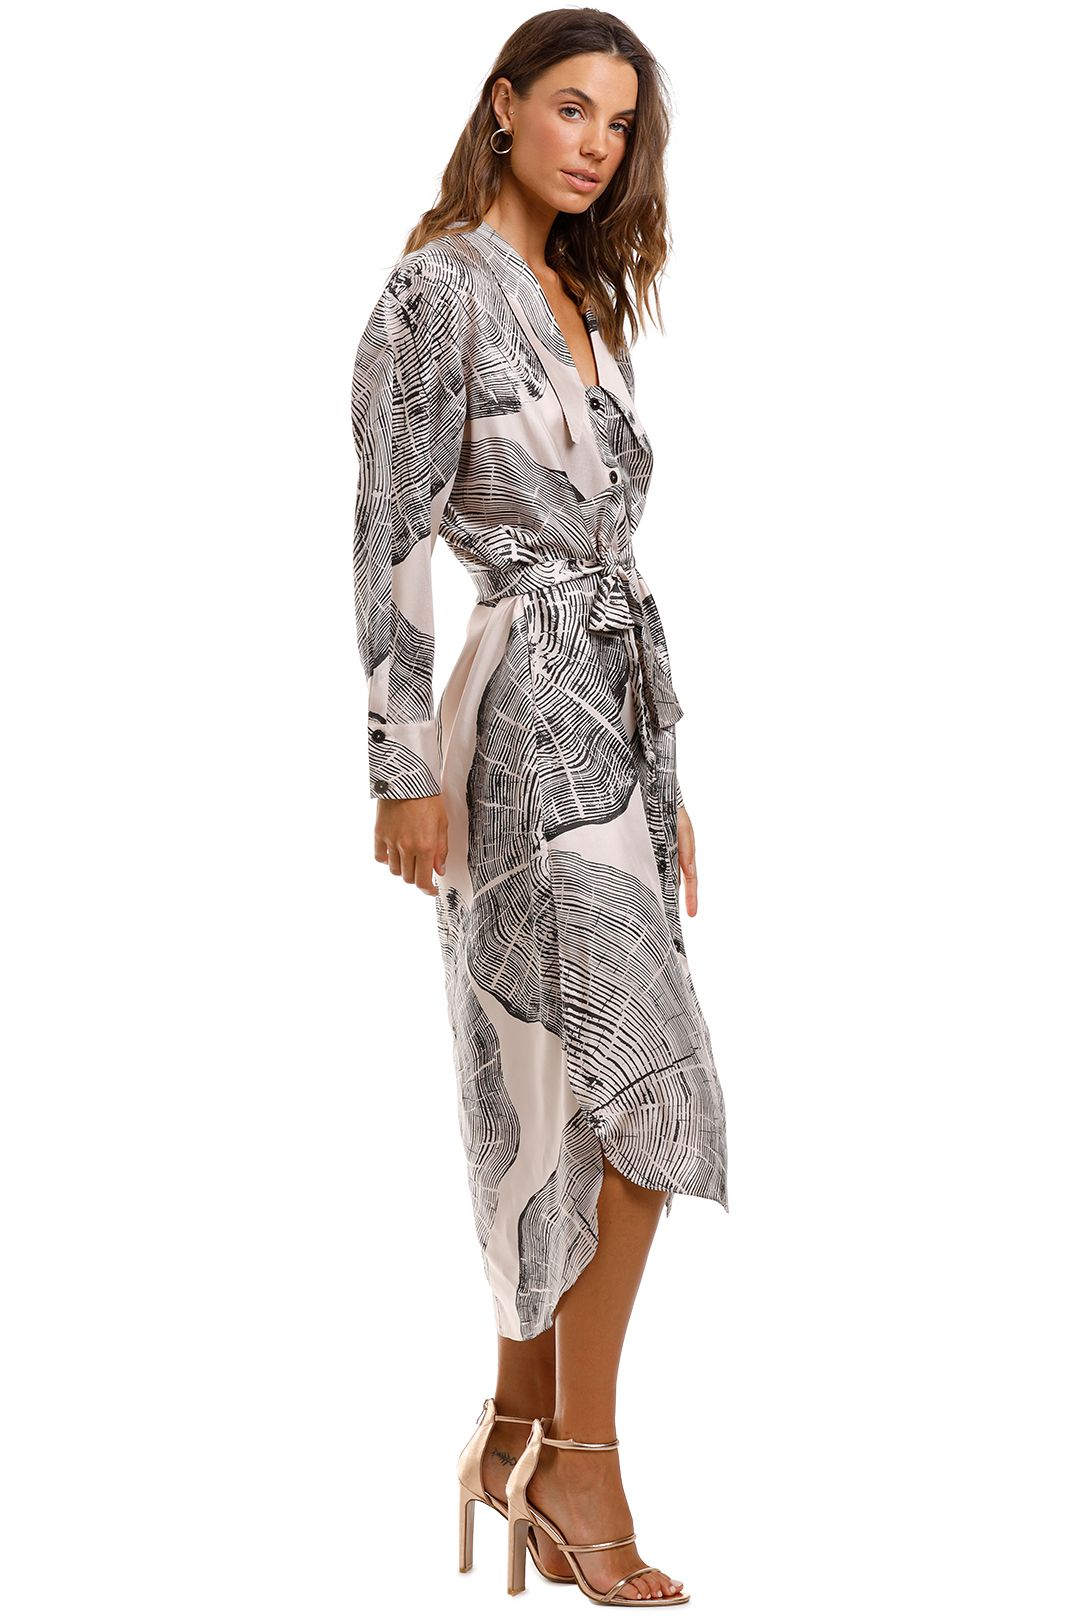 Ginger and Smart Concentric Shirt Dress